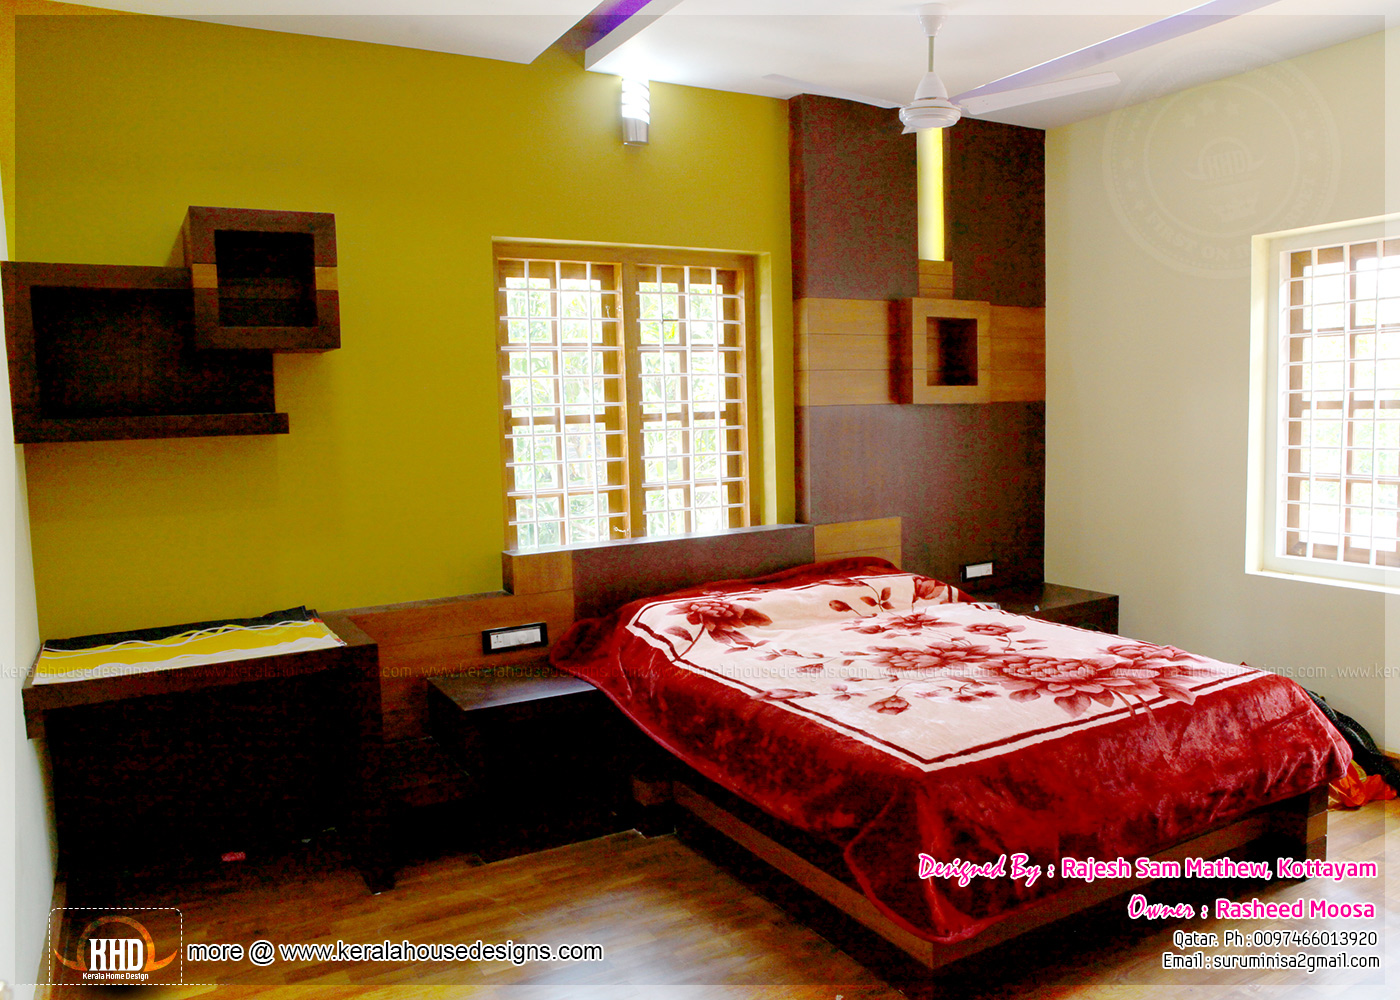 kerala interior design with photos indian house plans. Black Bedroom Furniture Sets. Home Design Ideas